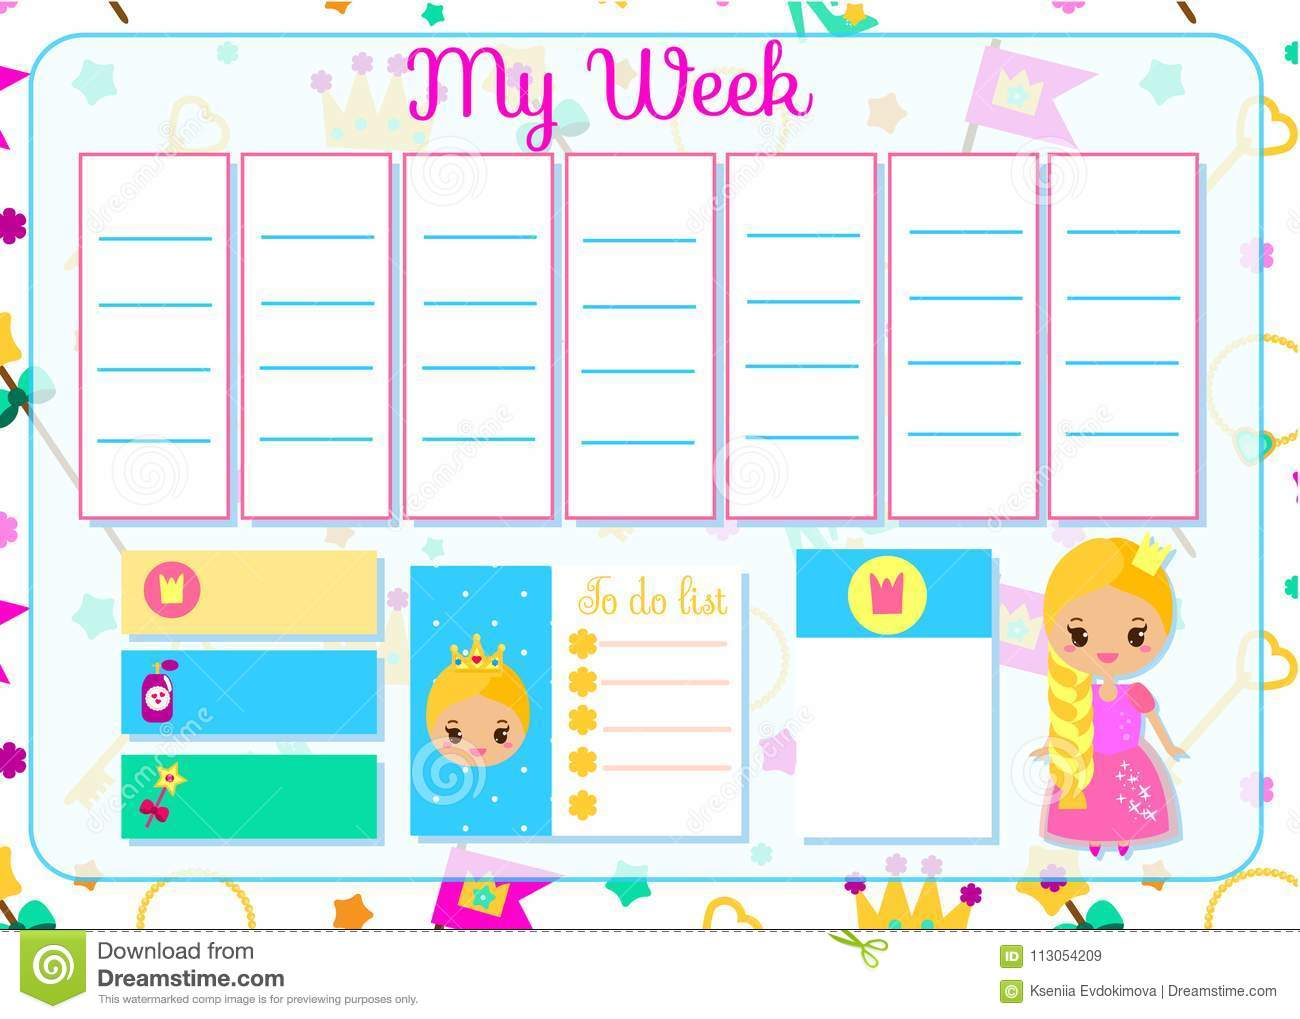 kids weekly schedule template - kids timetable with cute princess weekly planner for